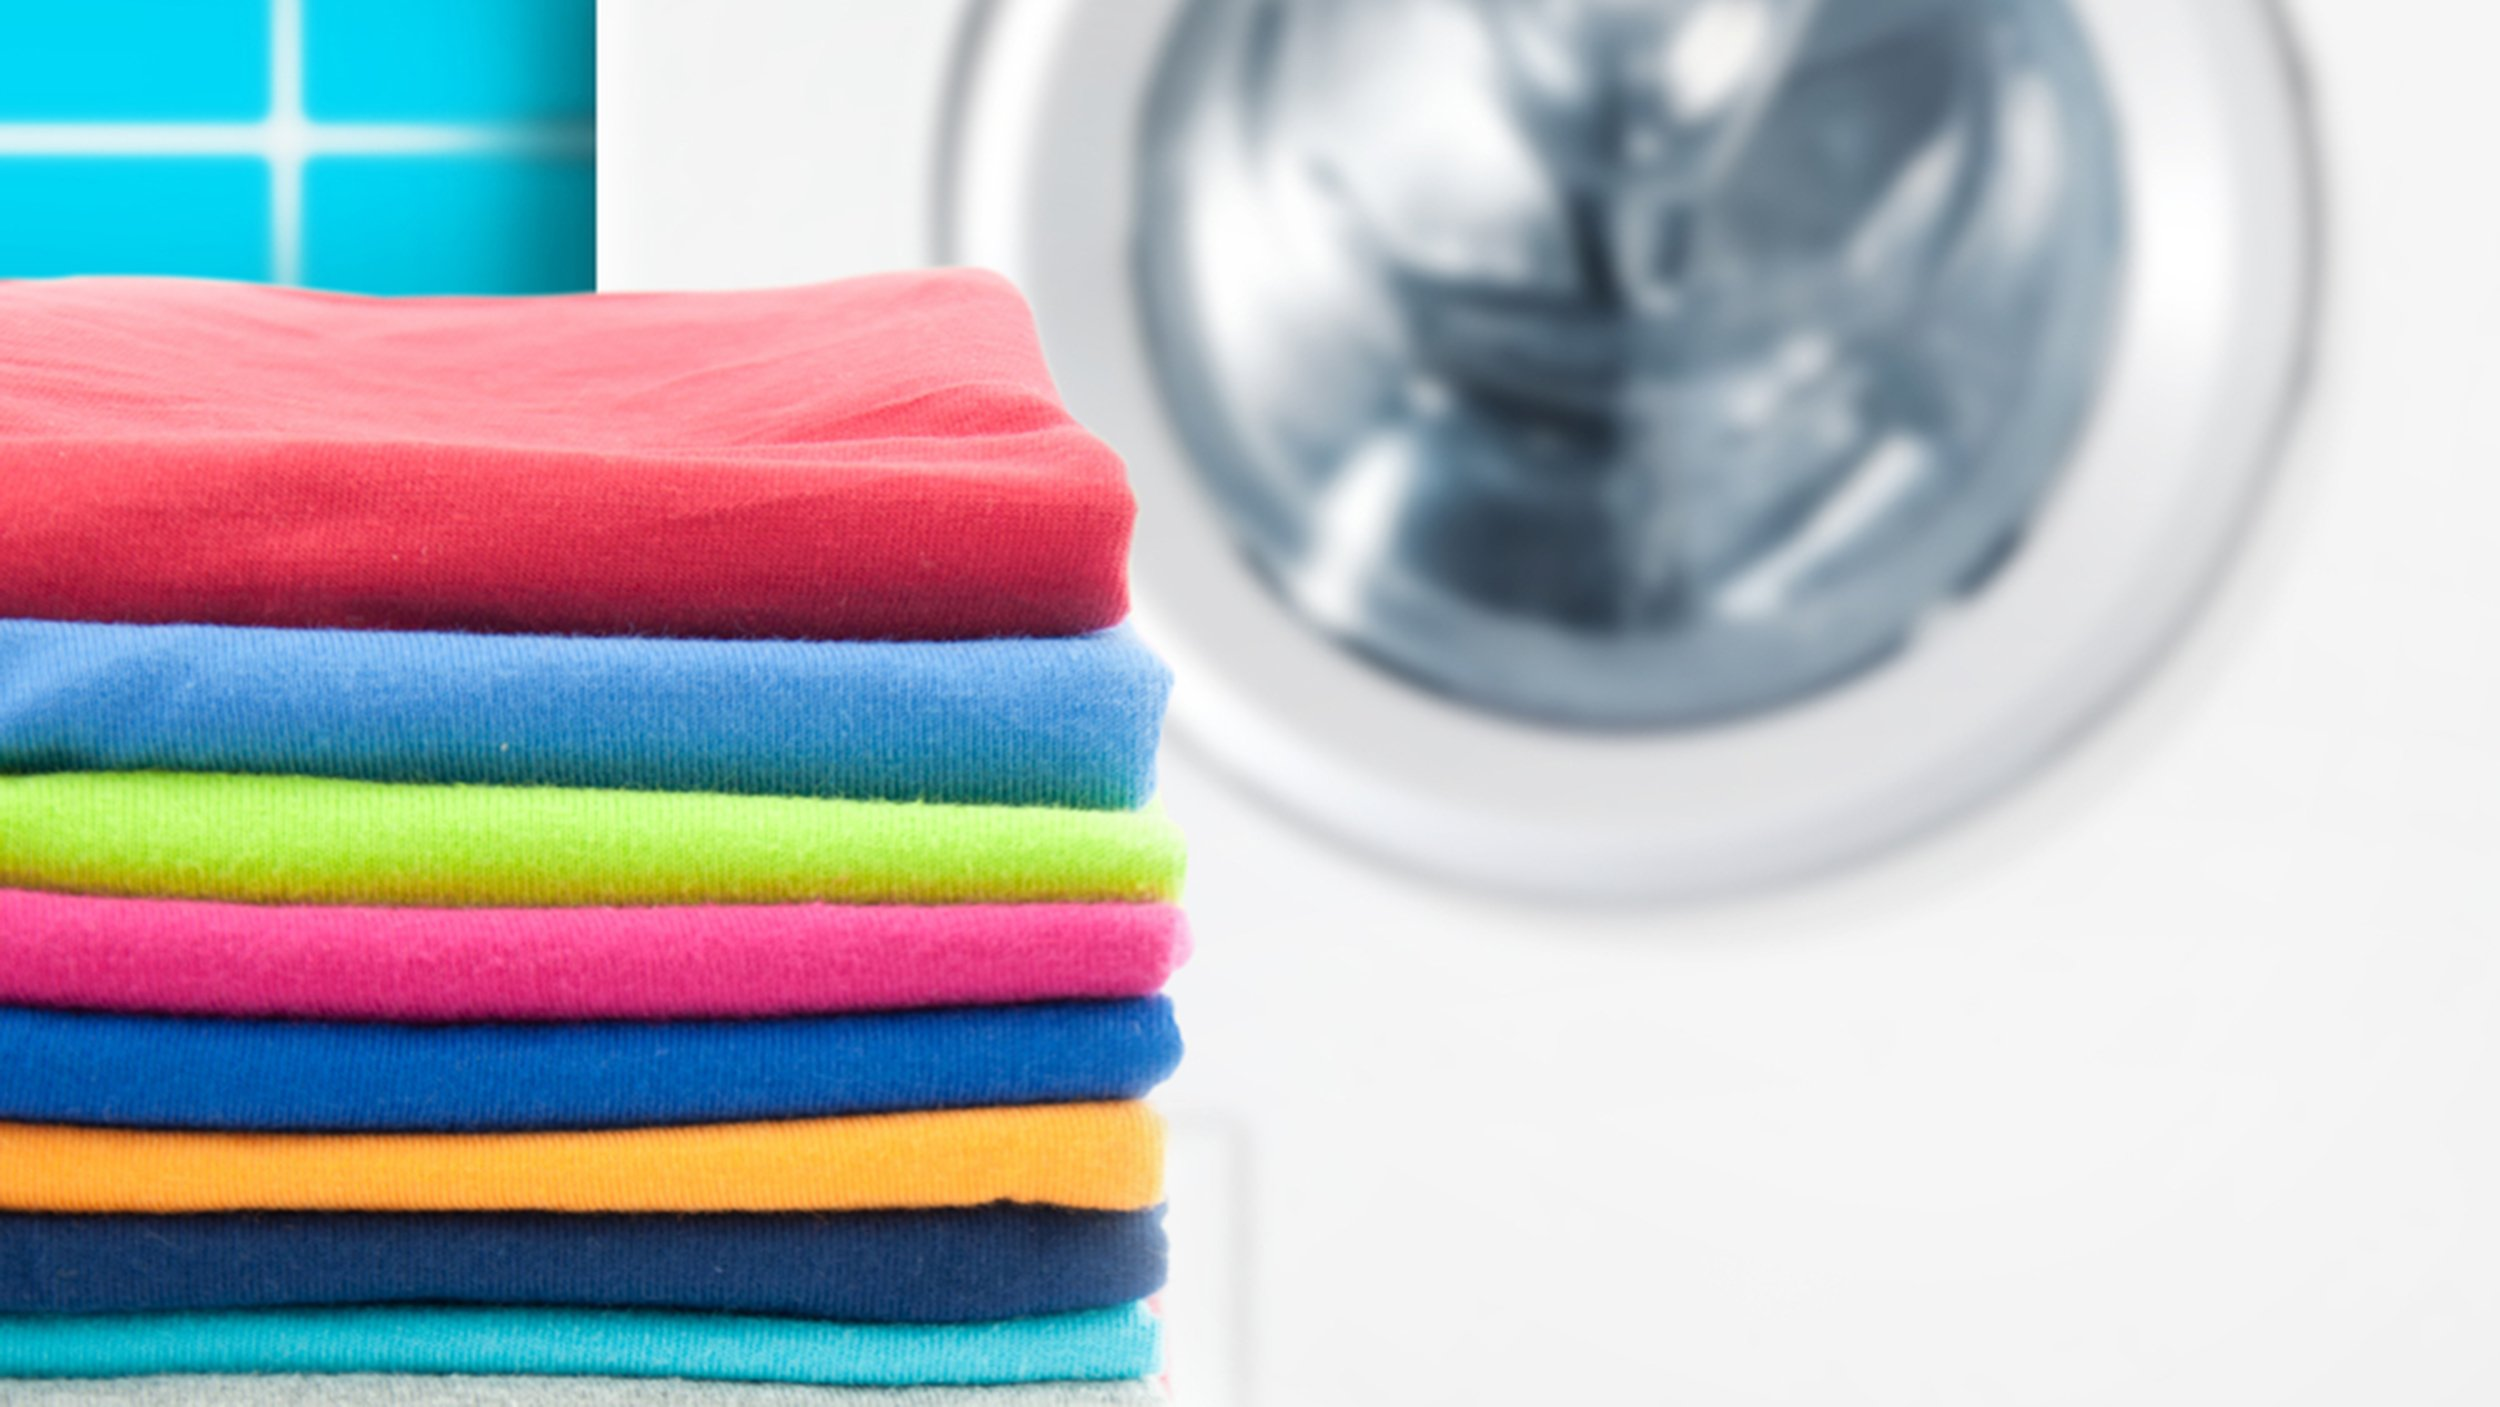 Do You Need To Wash Baby Clothes Before Use